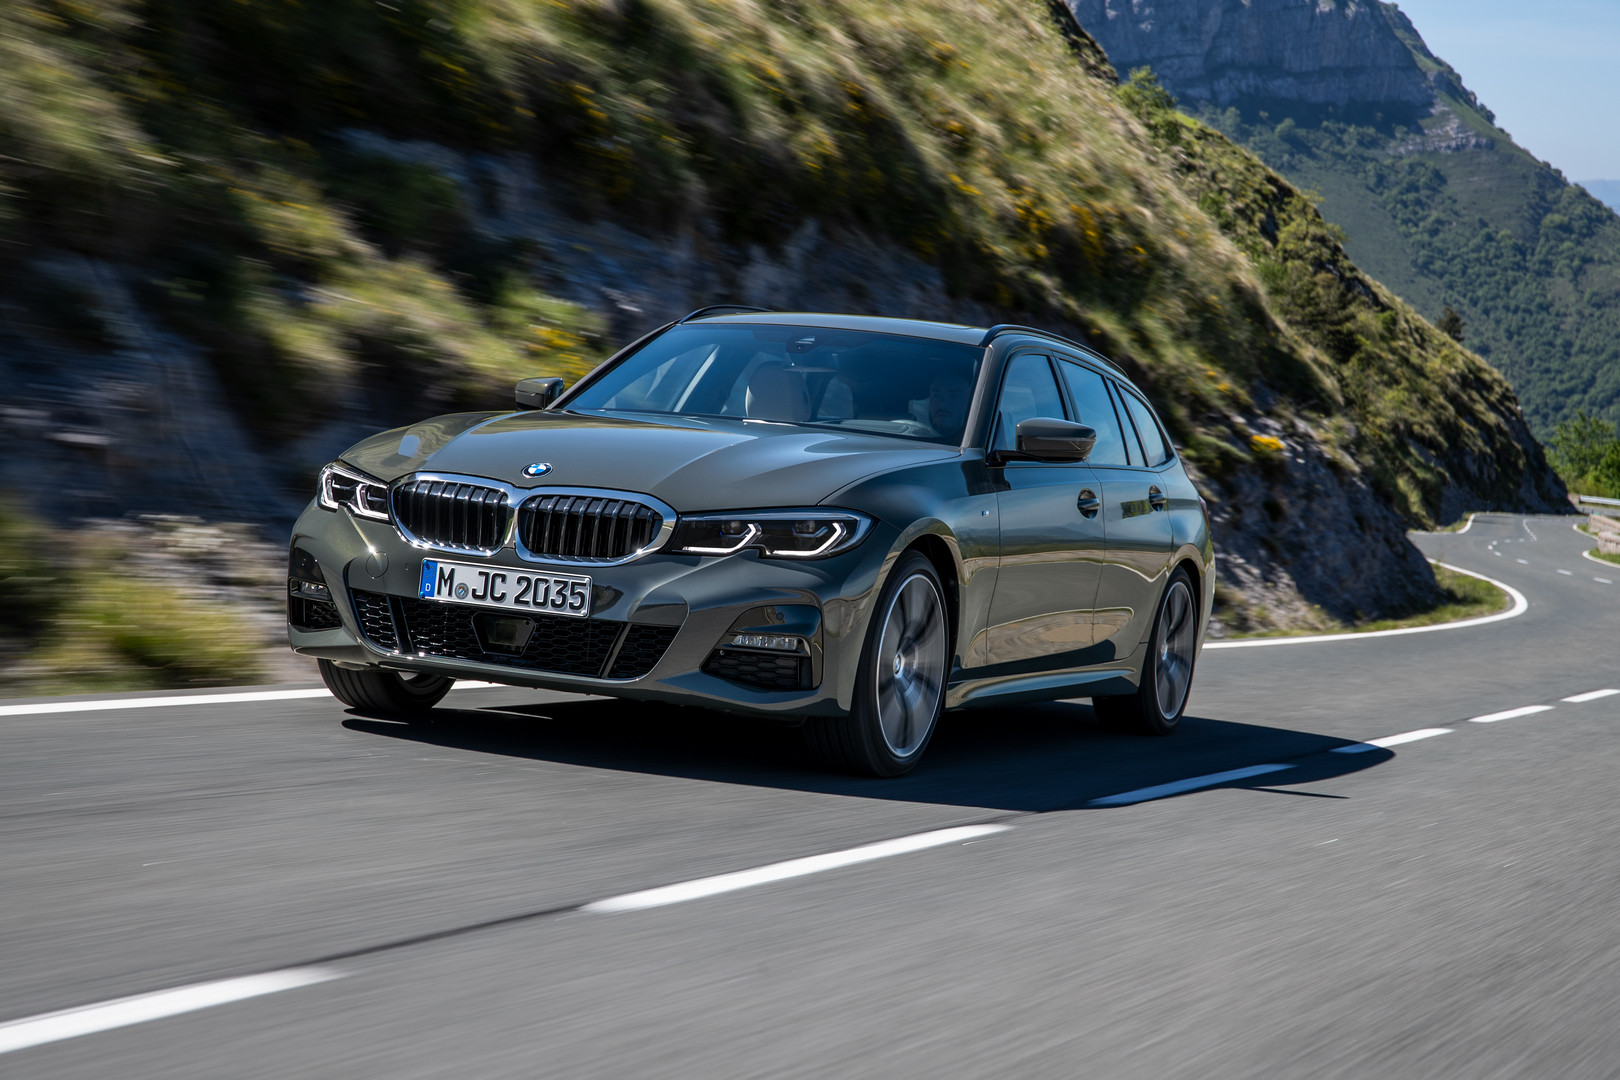 Front View BMW 3 Series Touring G21